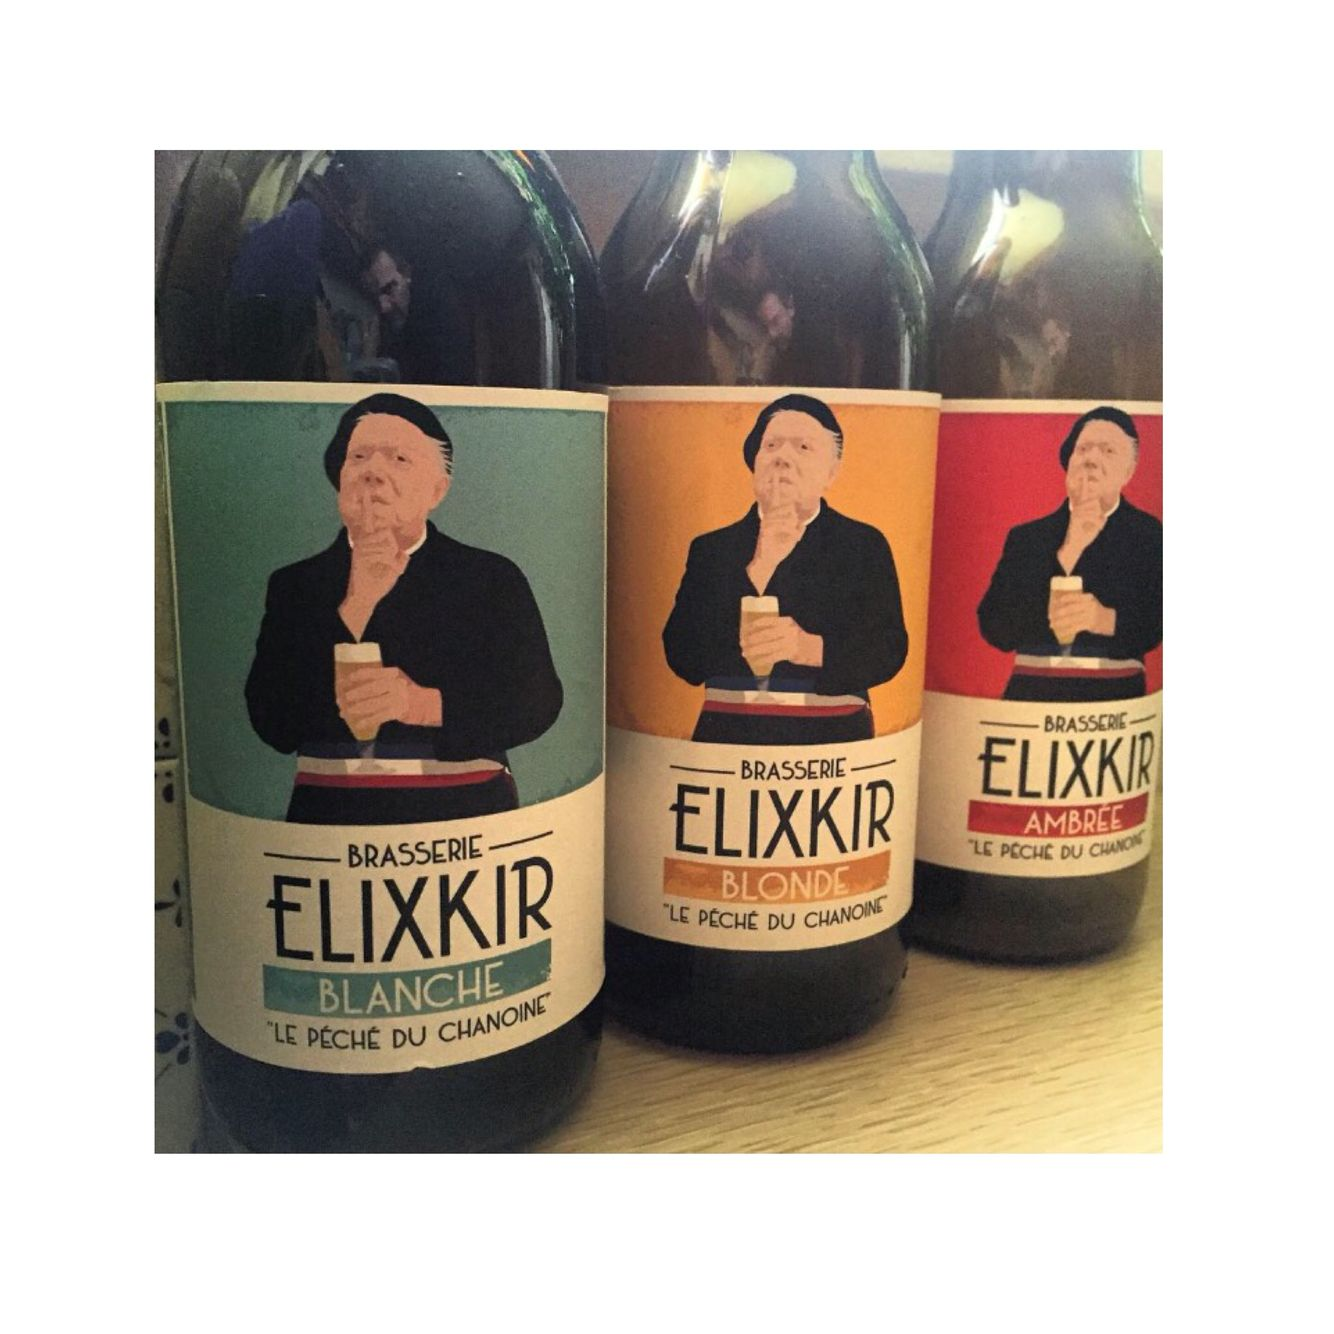 Elixkir new frenchcraft ipa beer from Dijon, Burgundy, with a nice label